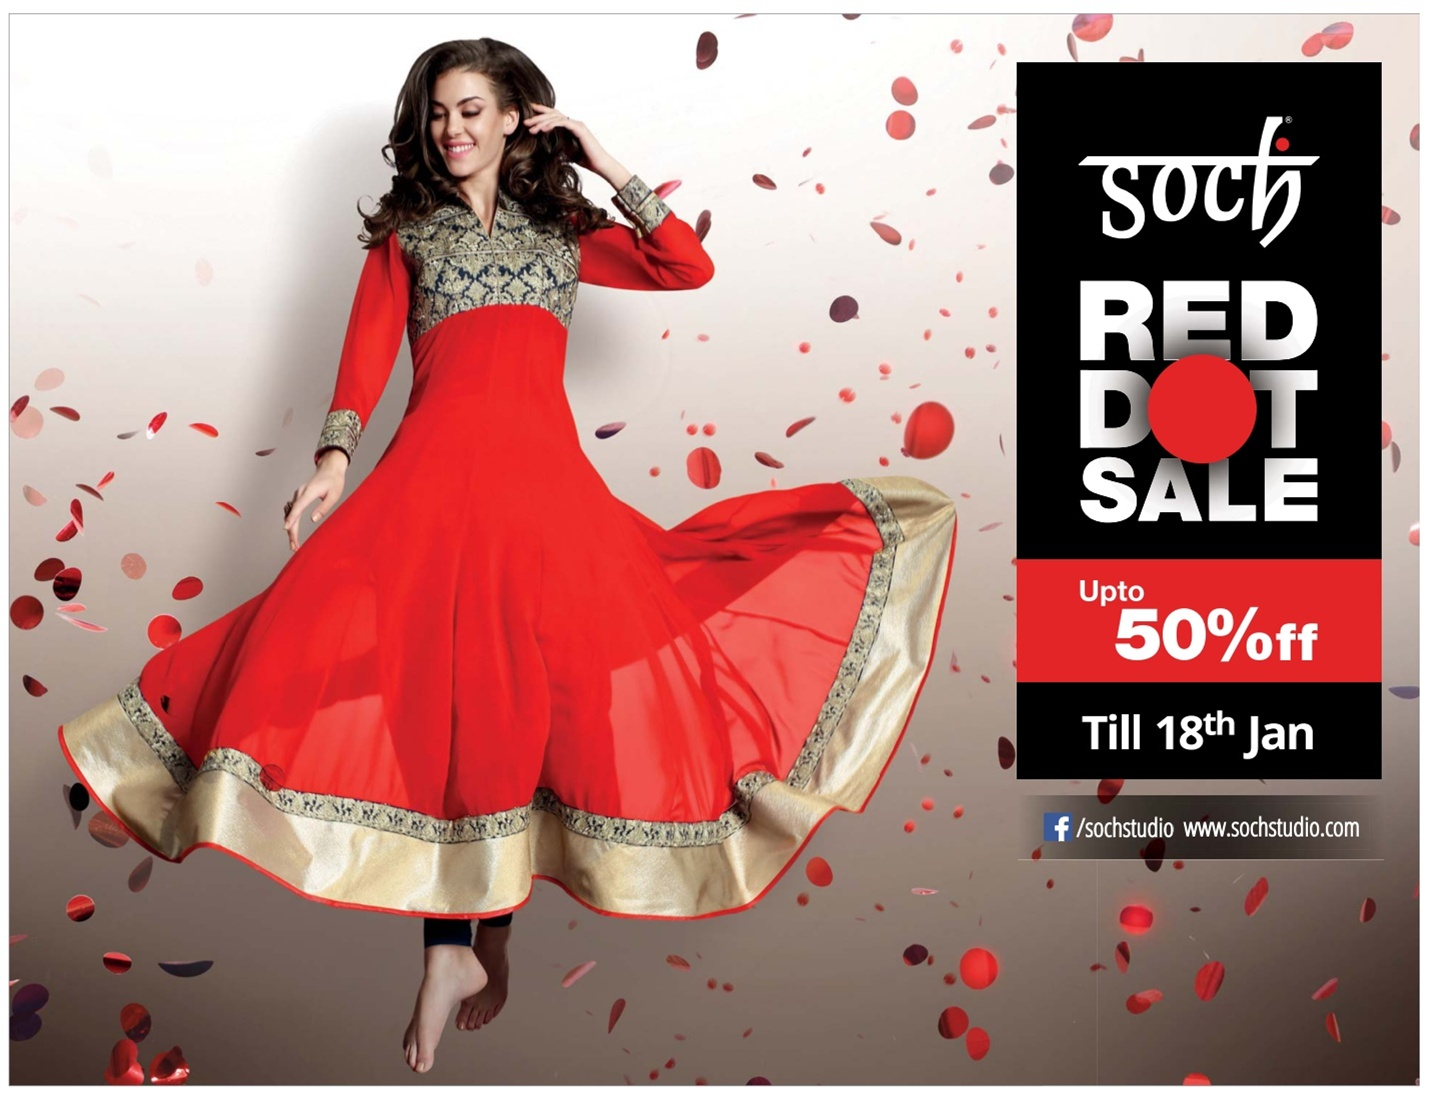 Soch - Red Dot Sale